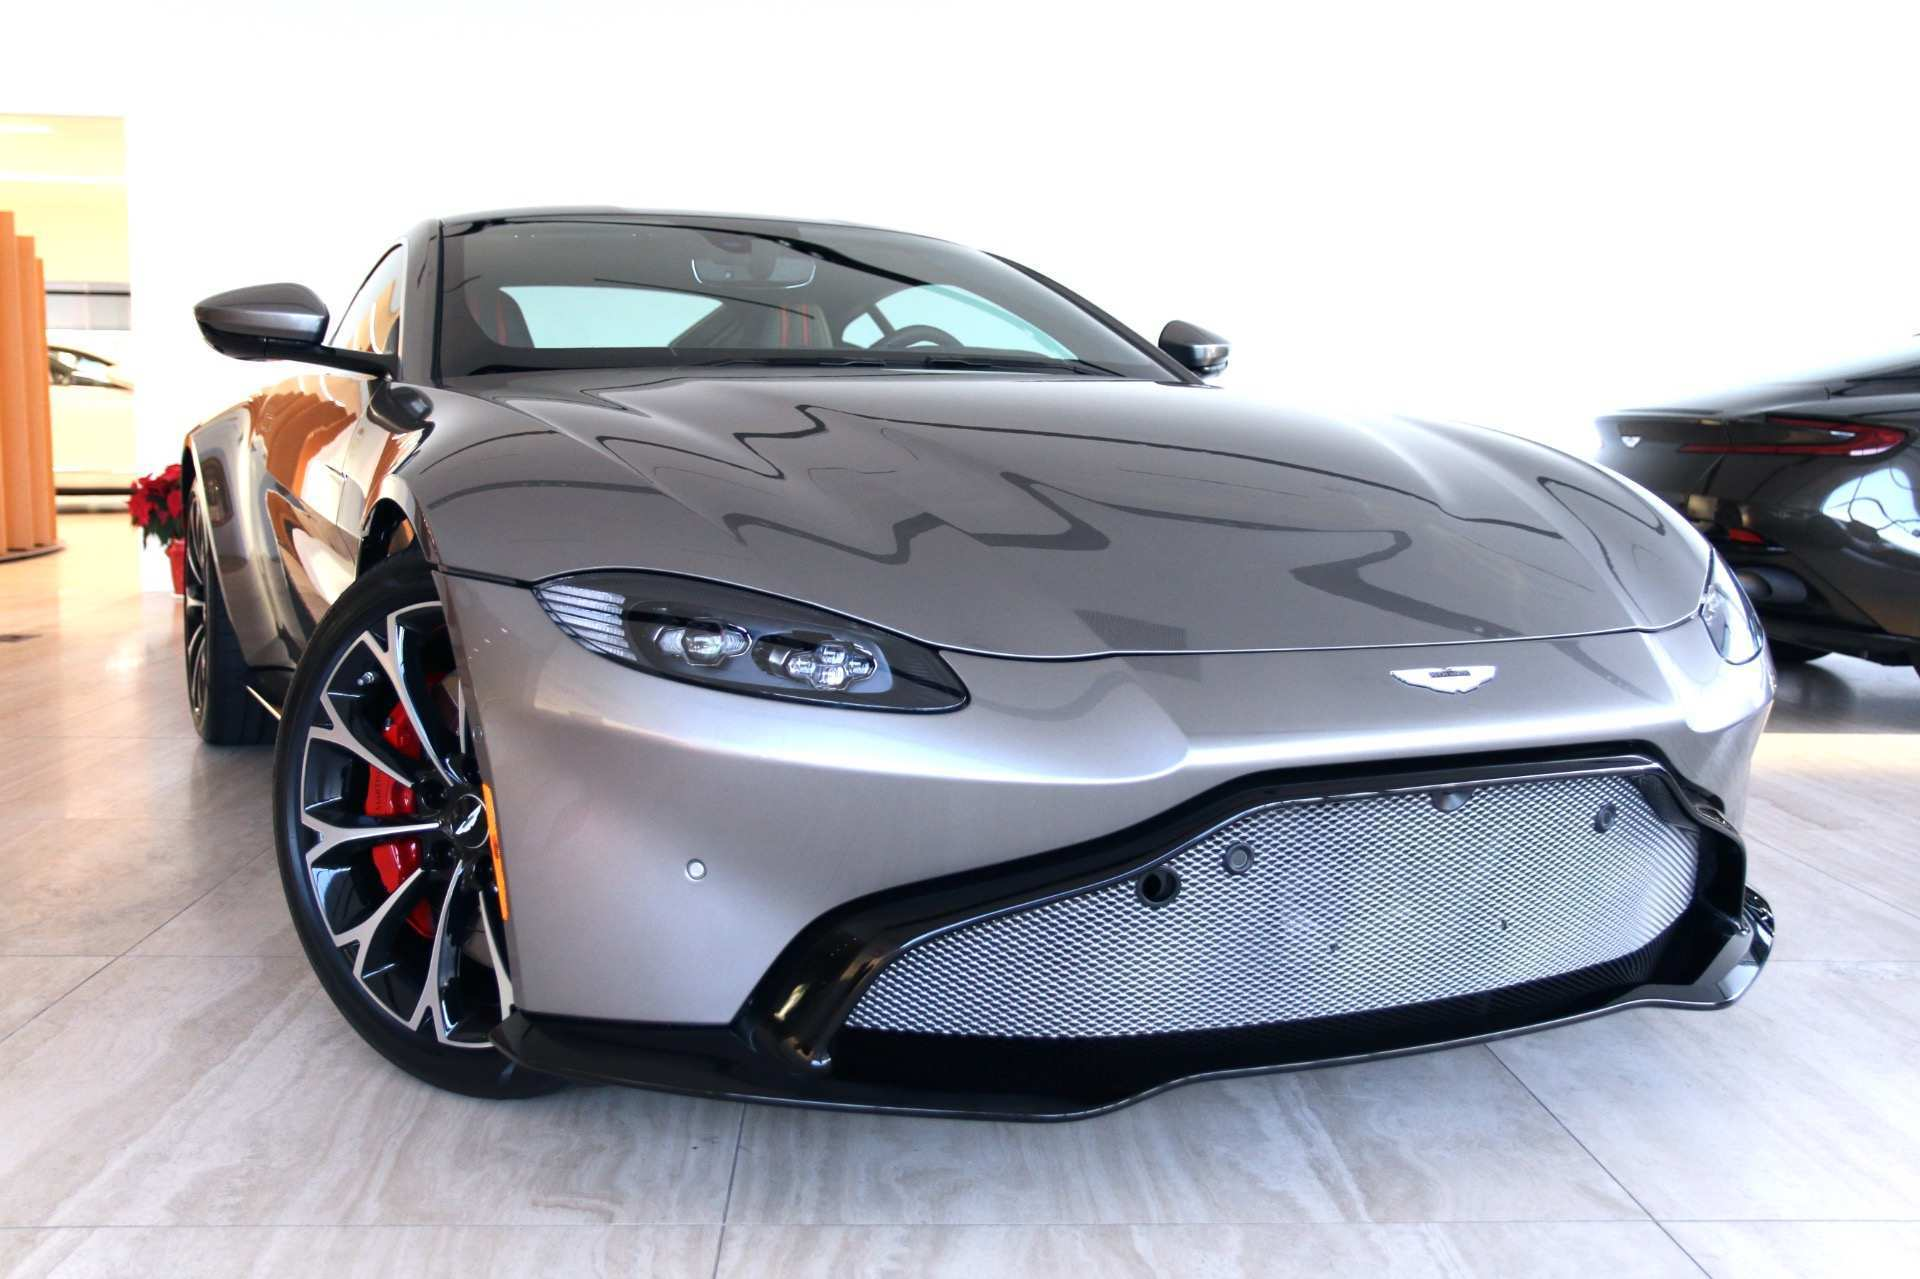 16 Concept of 2019 Aston Martin Vantage For Sale Concept for 2019 Aston Martin Vantage For Sale